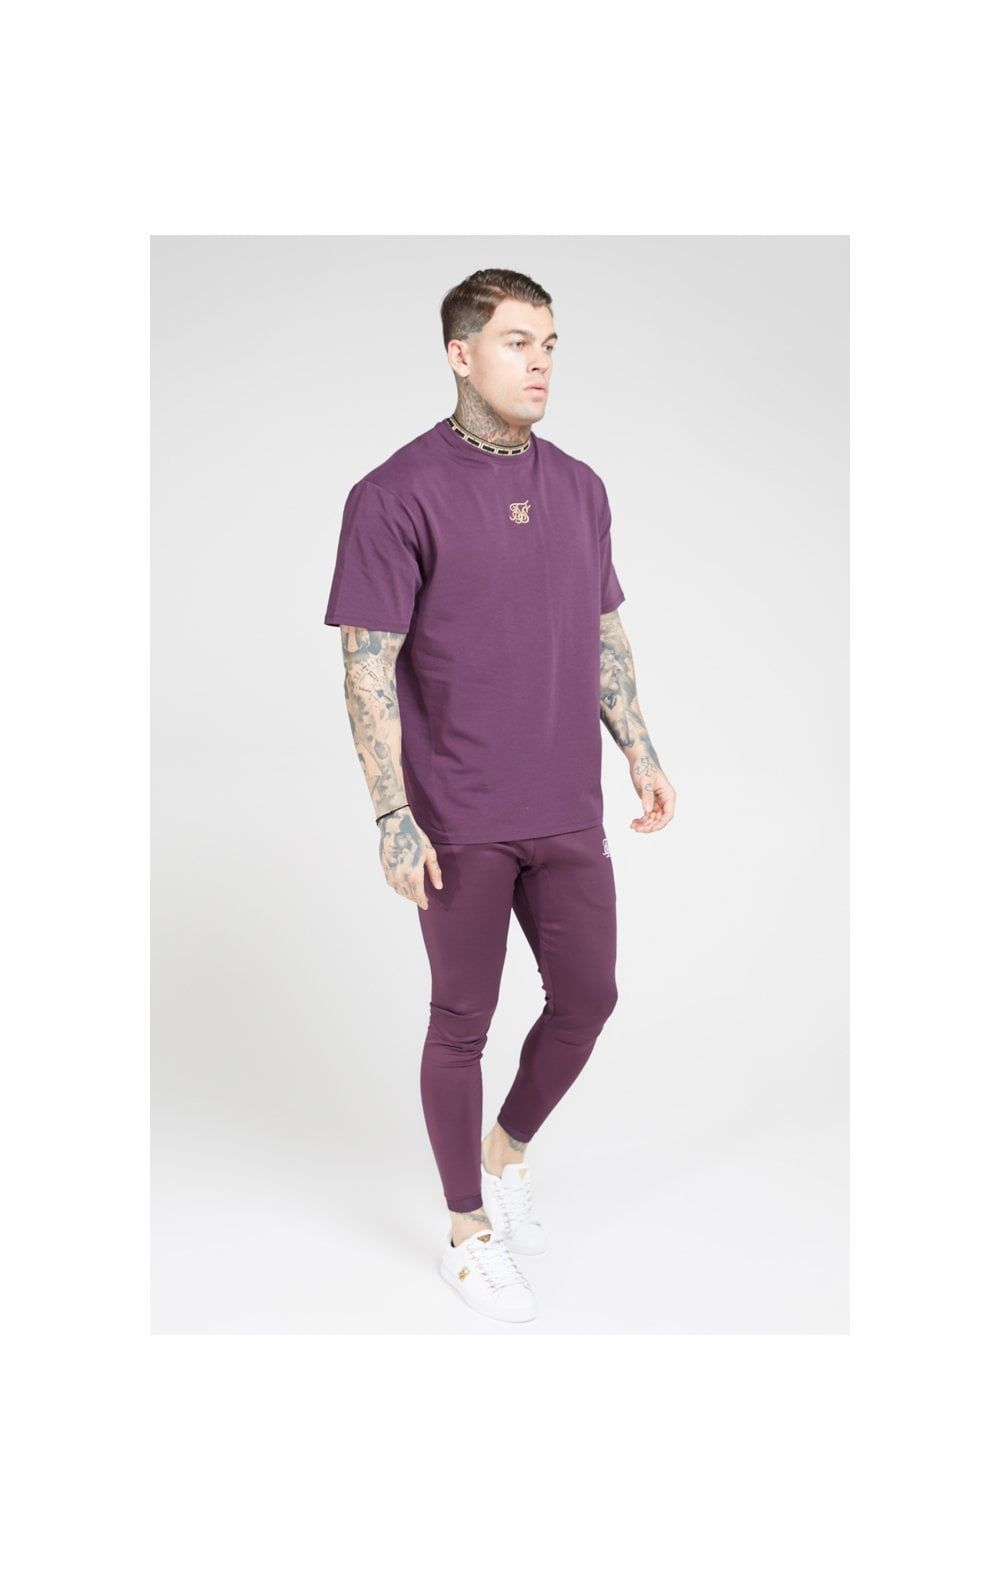 Load image into Gallery viewer, SikSilk Tape Collar Essential Tee - Burgundy & Gold (4)